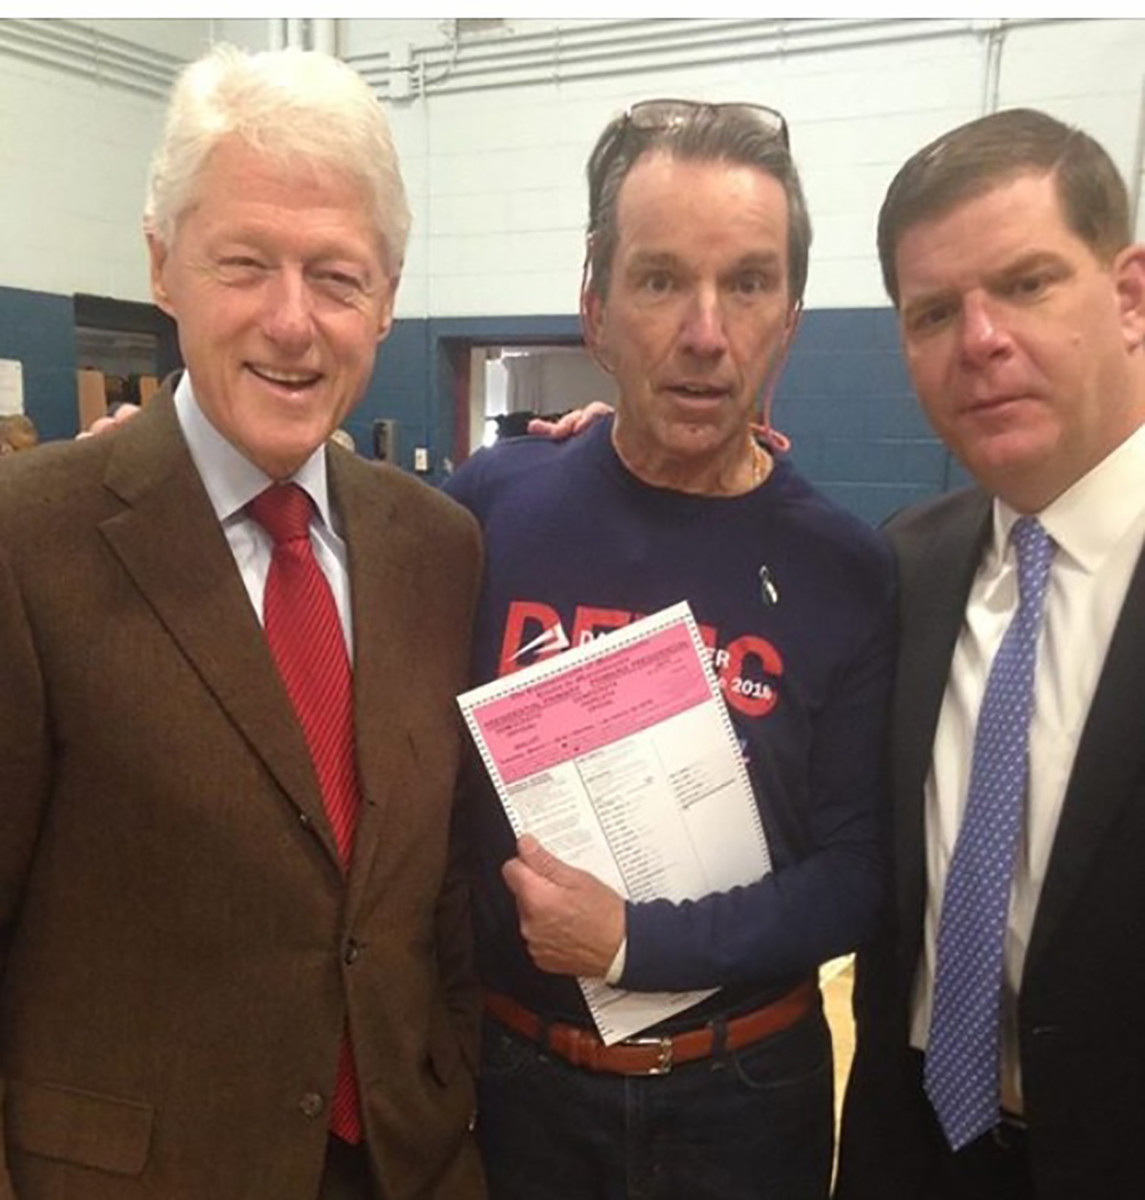 Bill Clinton posing with voter holding ballot inside West Roxbury polling station during voting hours on MA primary day.